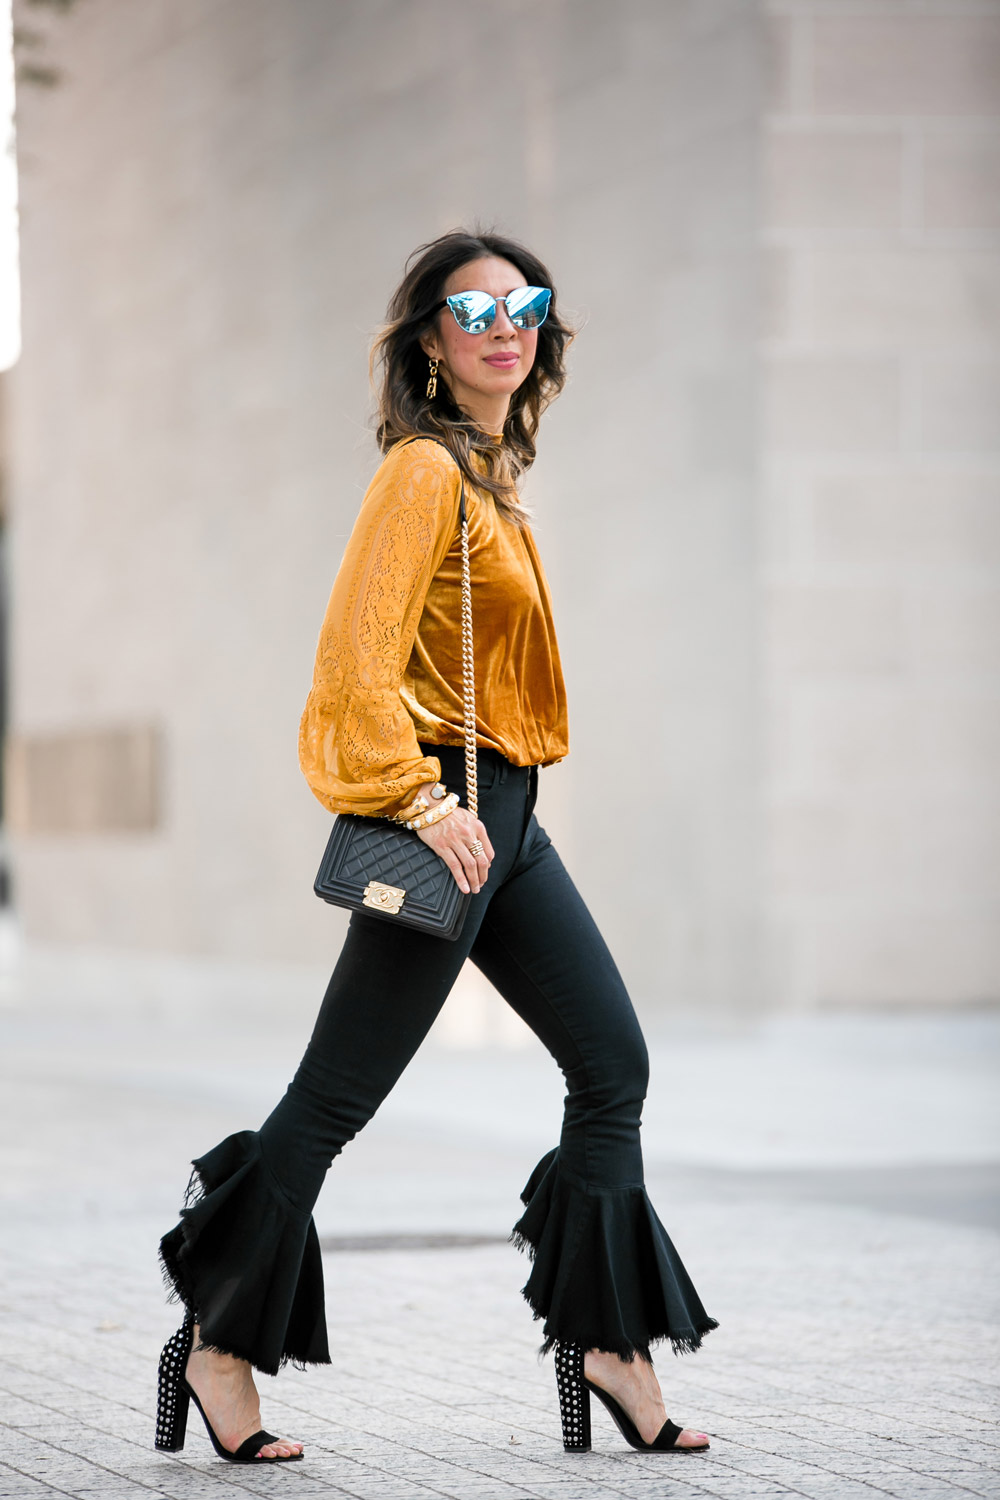 marigold velvet lace top citizens of humanity drew flounce jeans chanel boy bag dior sunglasses